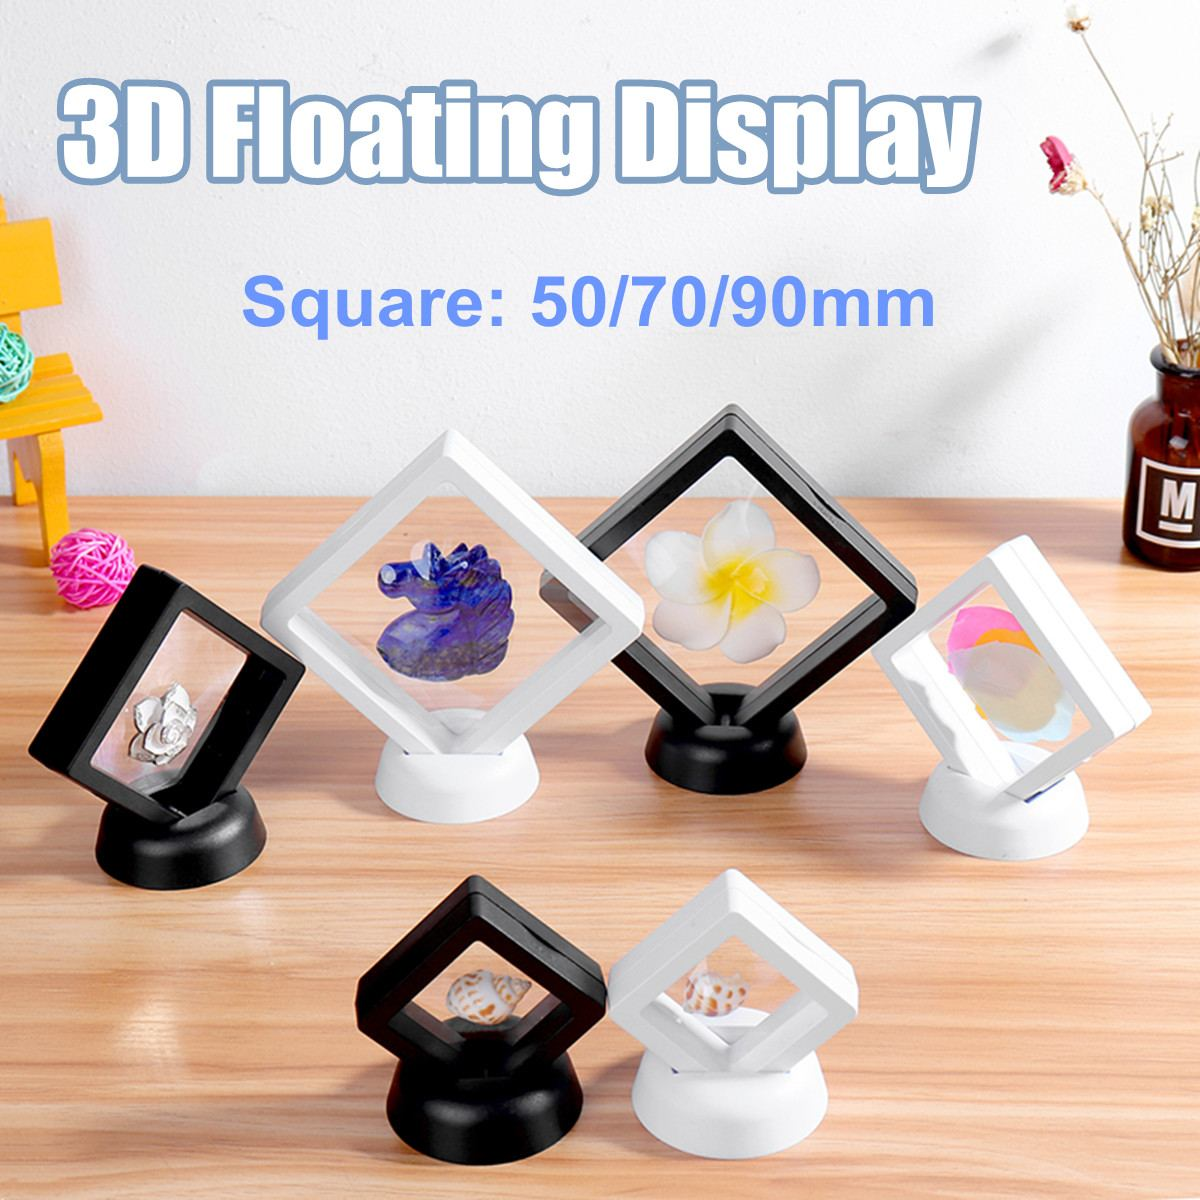 Fashion ABS Cases Displays Square 3D Albums Floating Frame Holder Black White Coin Box Jewelry Display Show Case For Wedding